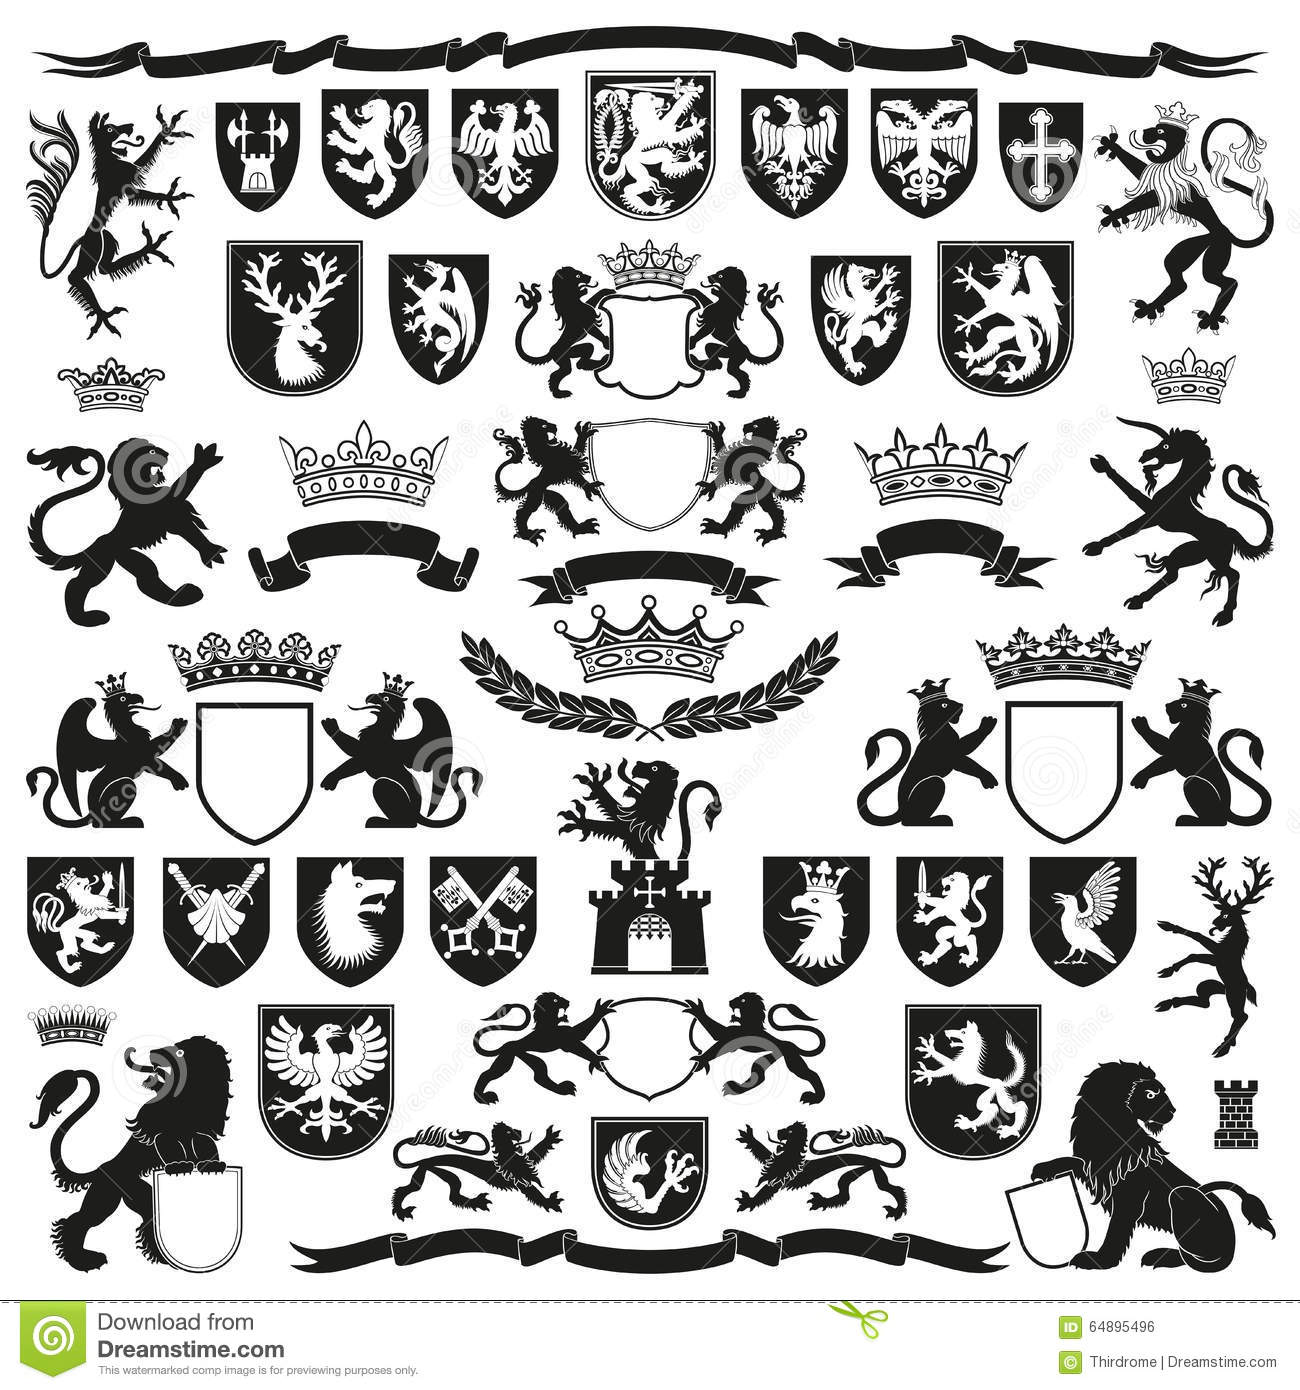 Heraldry Symbols And Decorative Elements Stock Vector Illustration